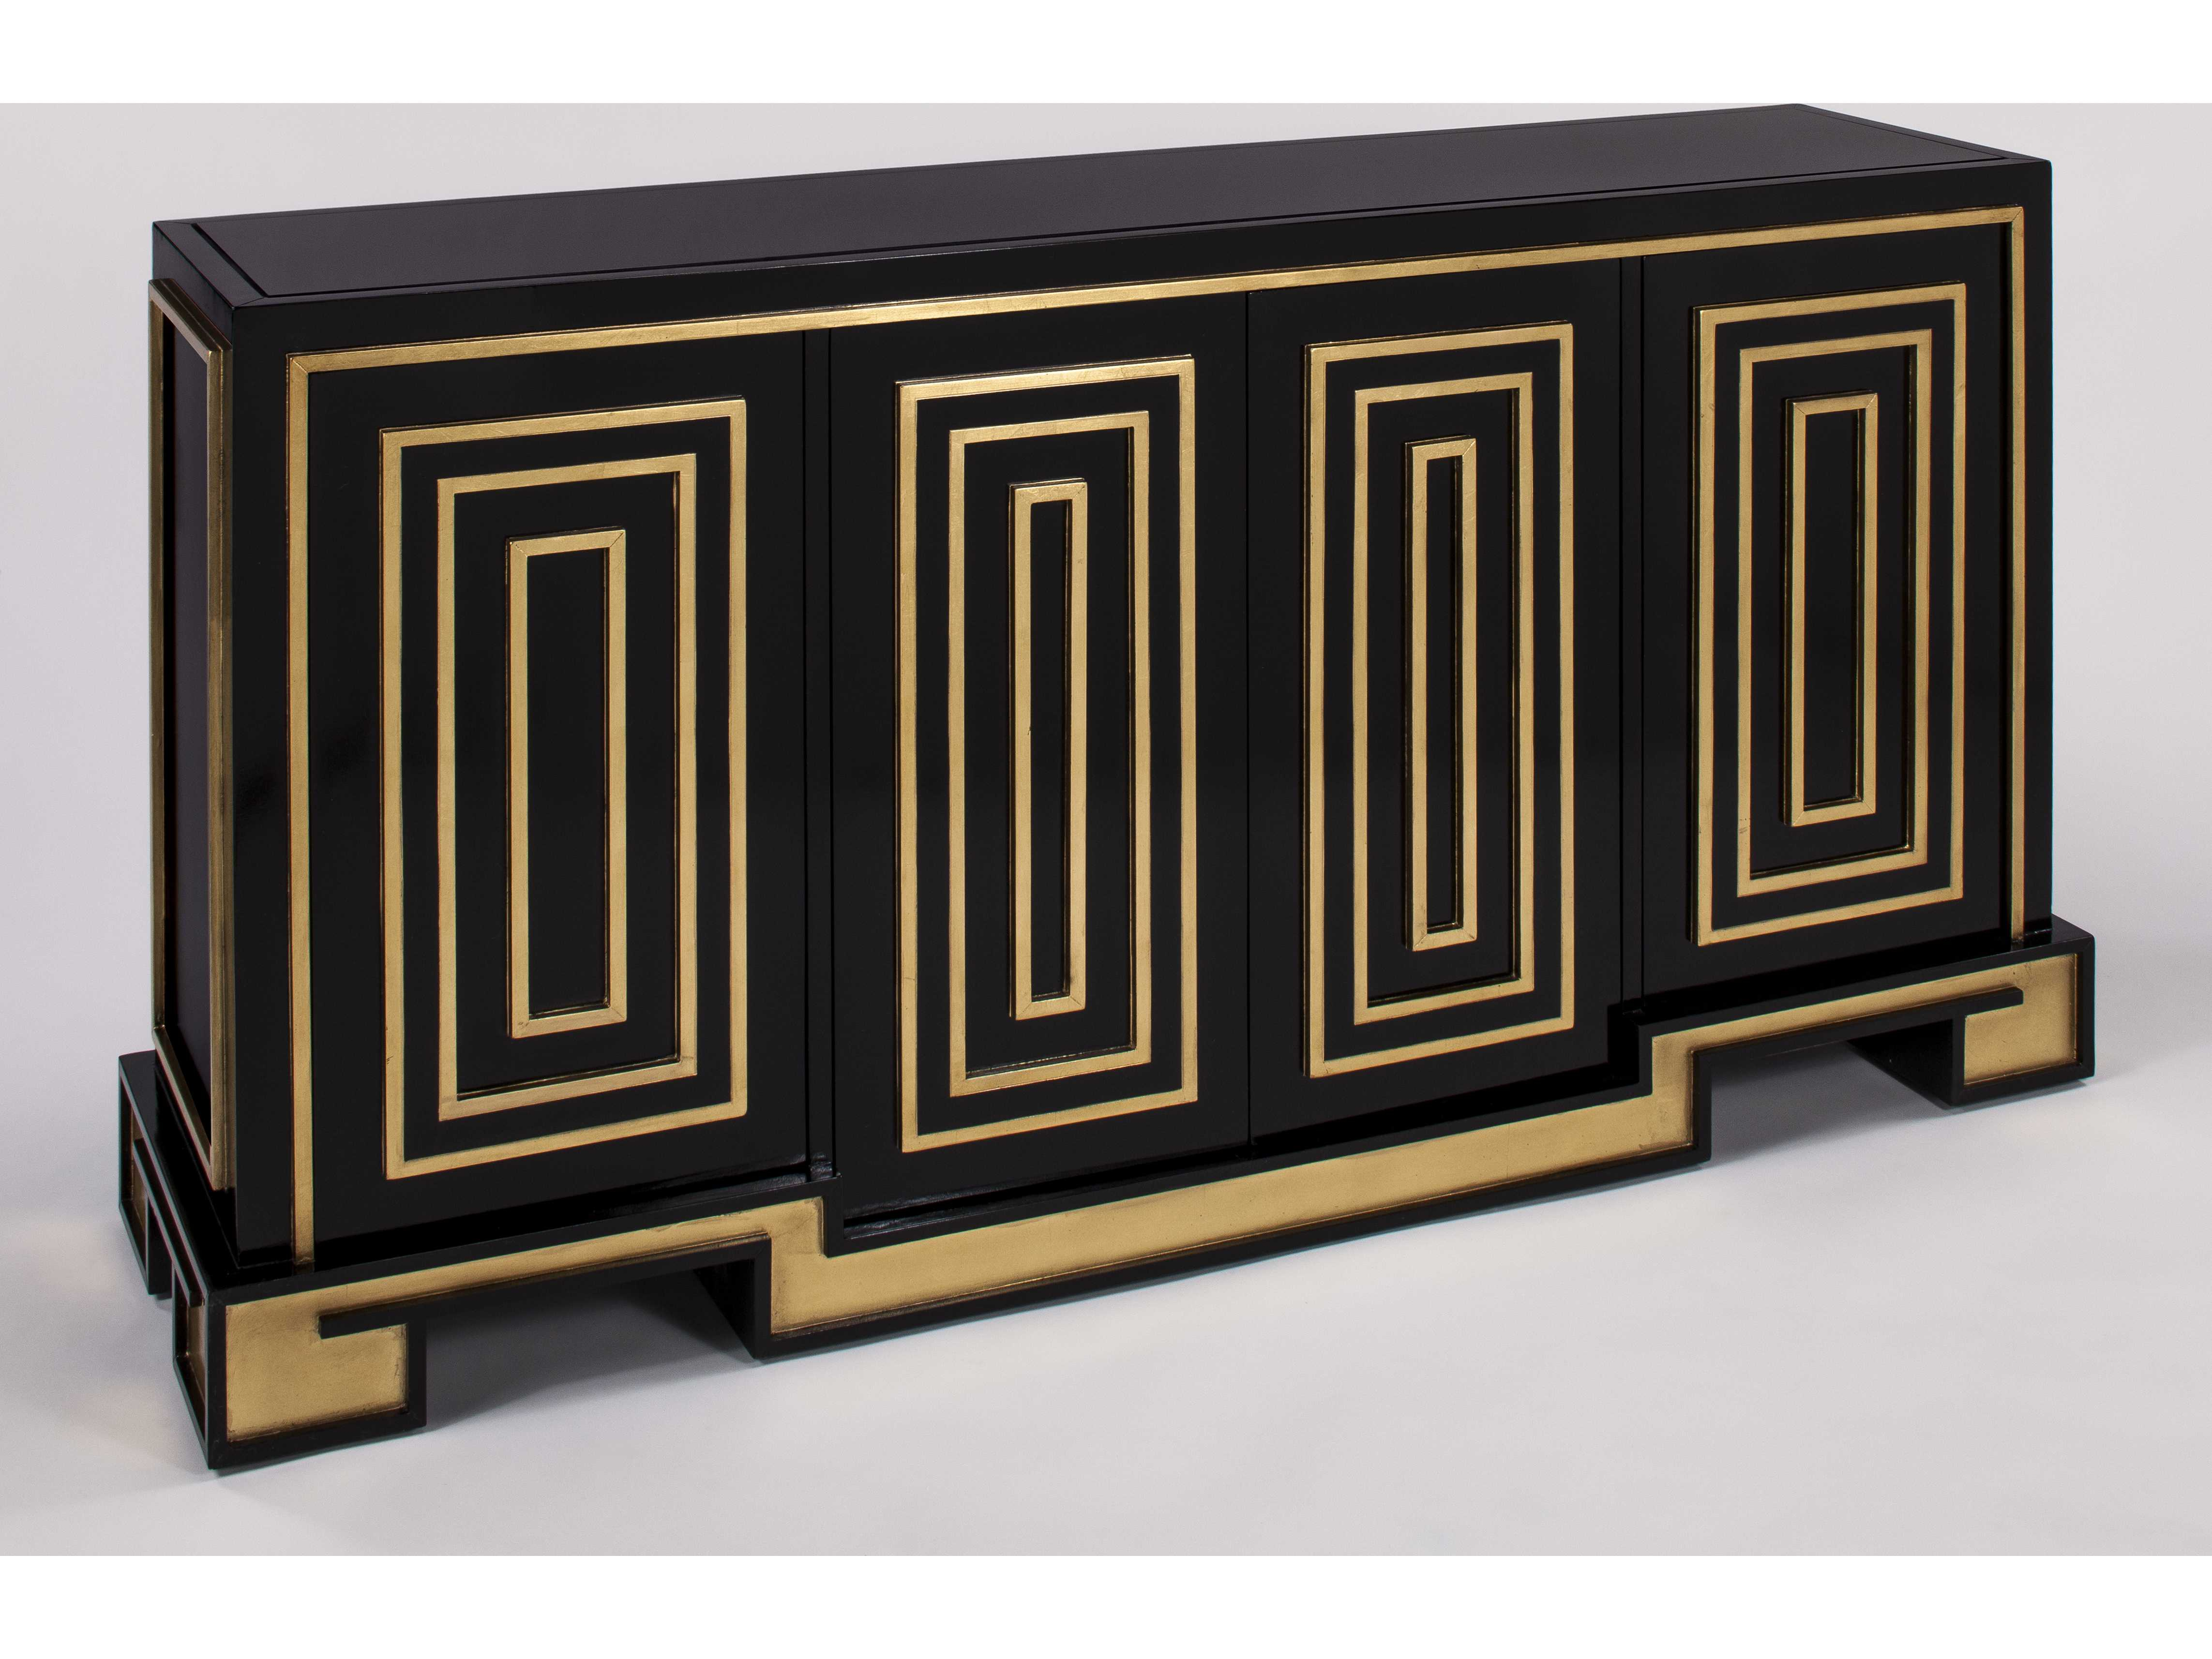 Artmax 63.5 X 34 Gold Leaf & Black Lacquer Credenza Cabinet in Multi Stripe Credenzas (Image 4 of 30)